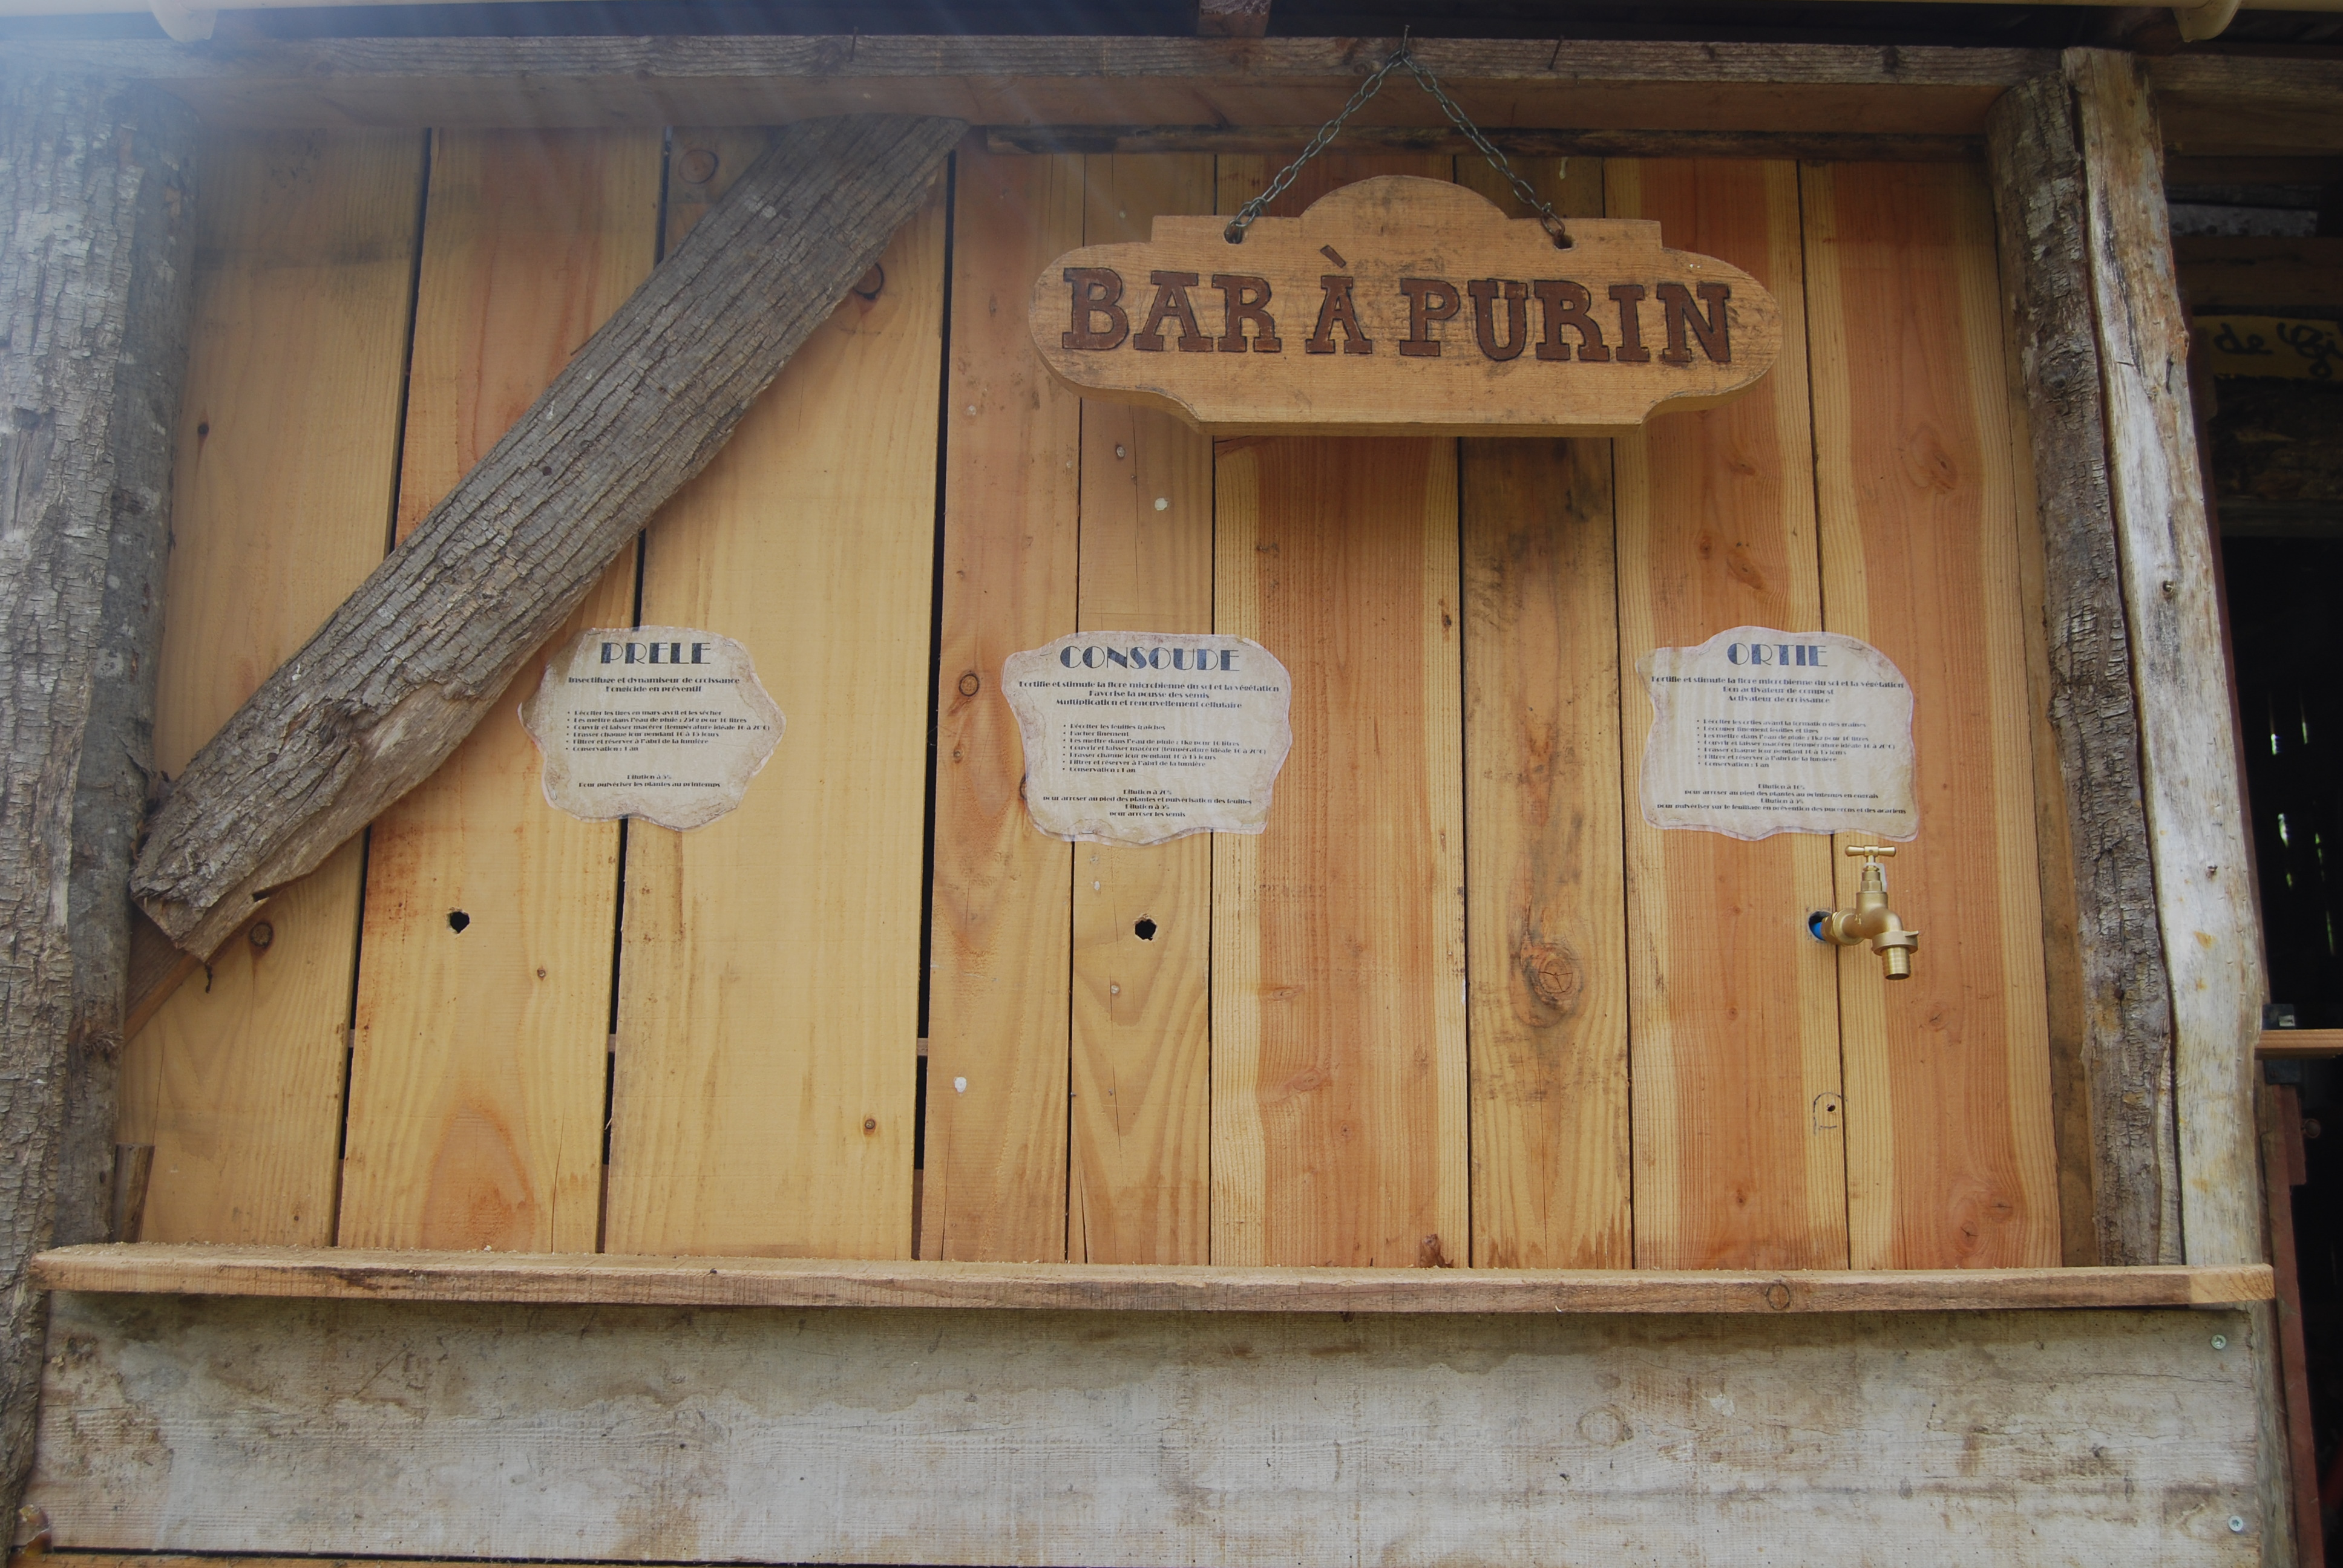 Le bar à purins en construction